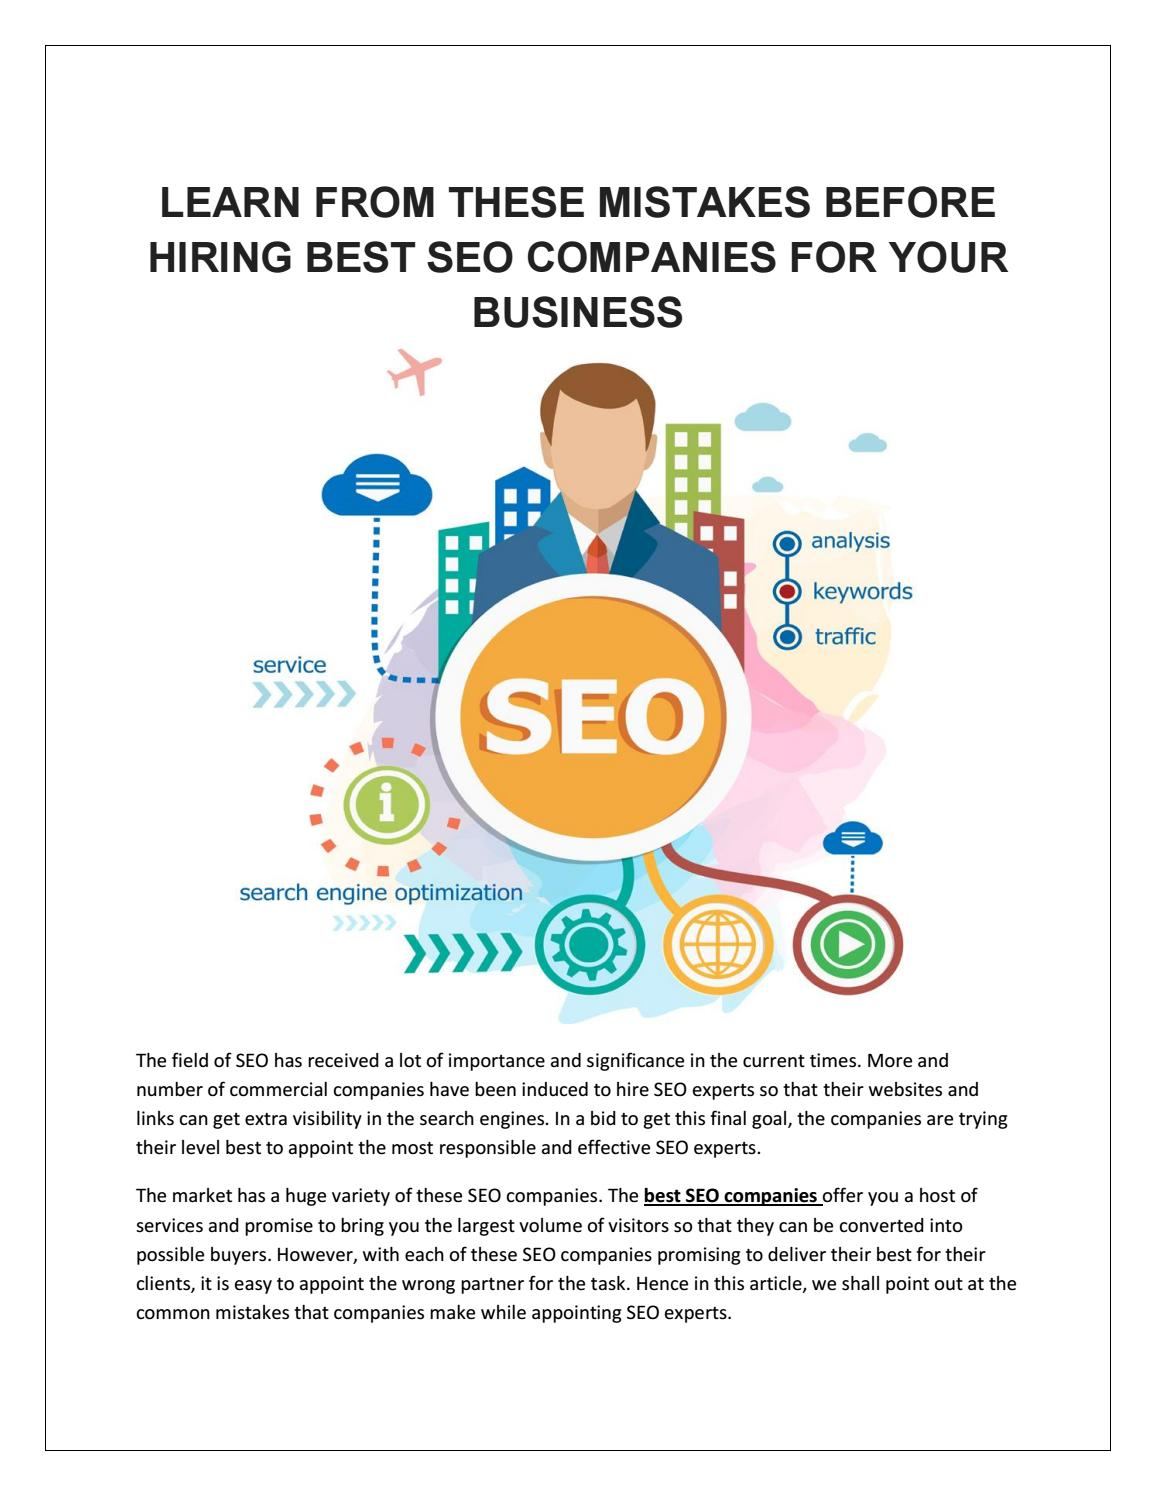 Why Some Companies Are Trying To Hire >> Learn From These Mistakes Before Hiring Best Seo Companies